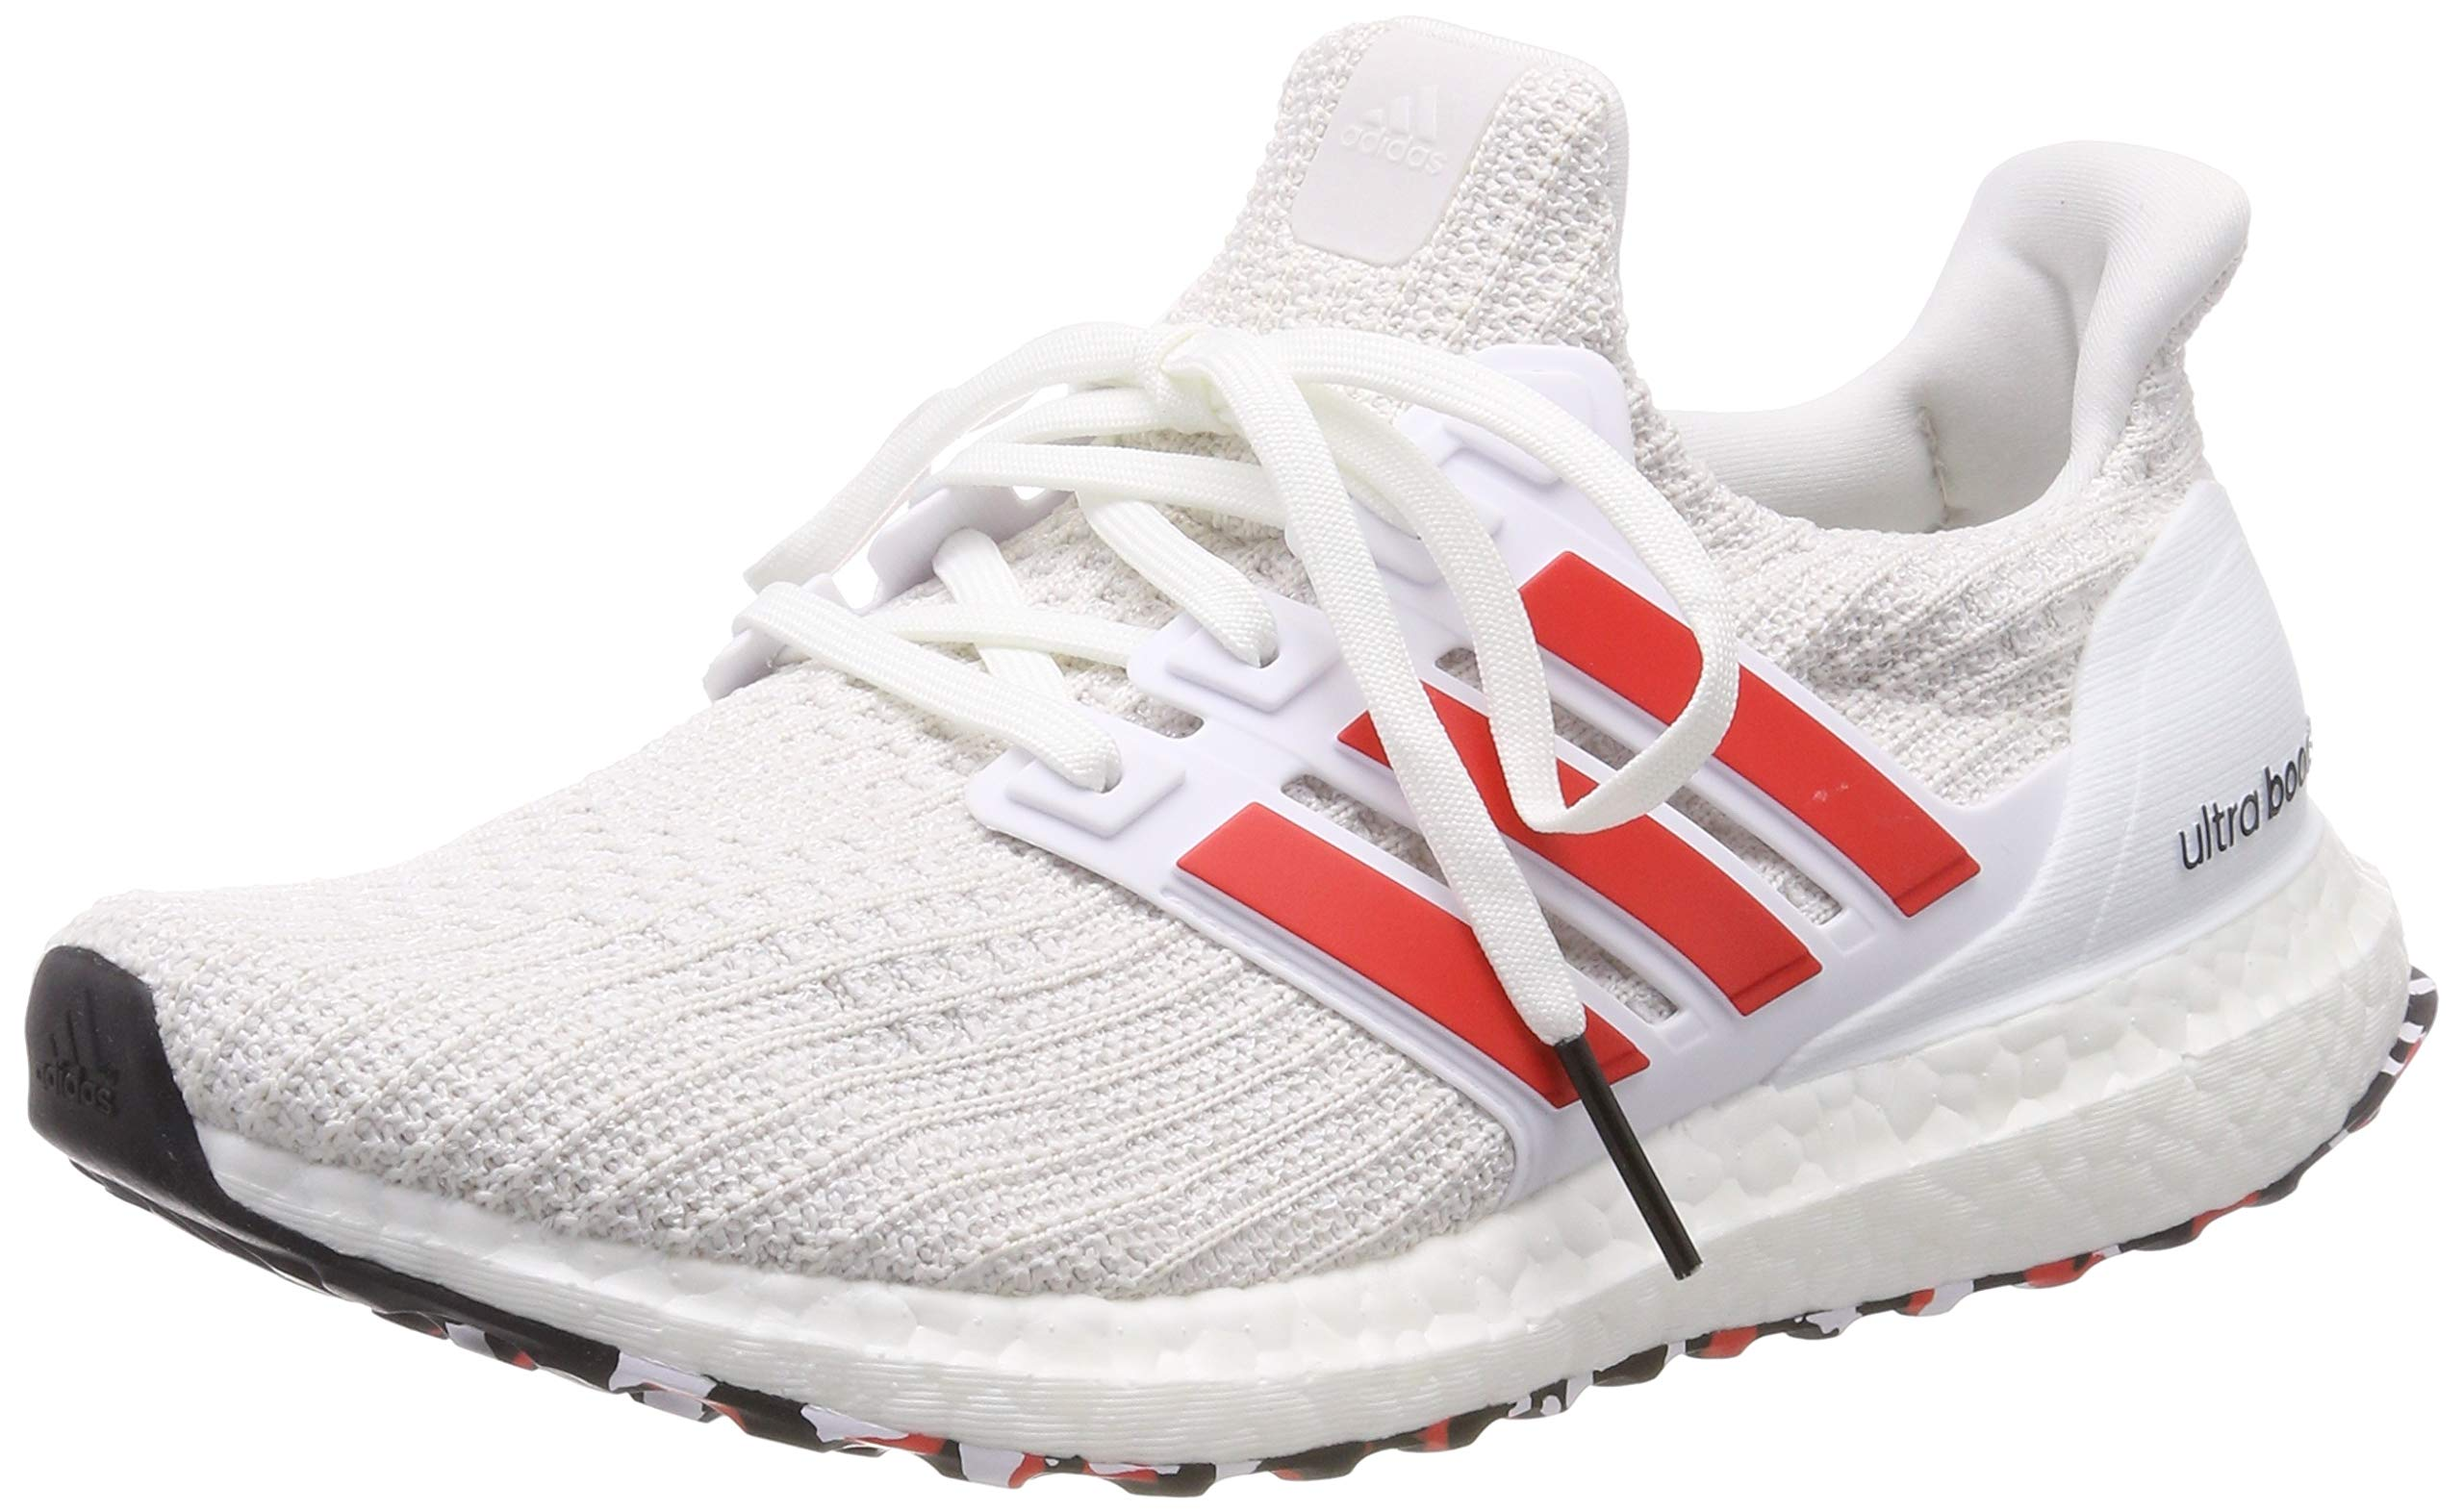 81hsfylK8gL - adidas Men's Ultraboost Running Shoes